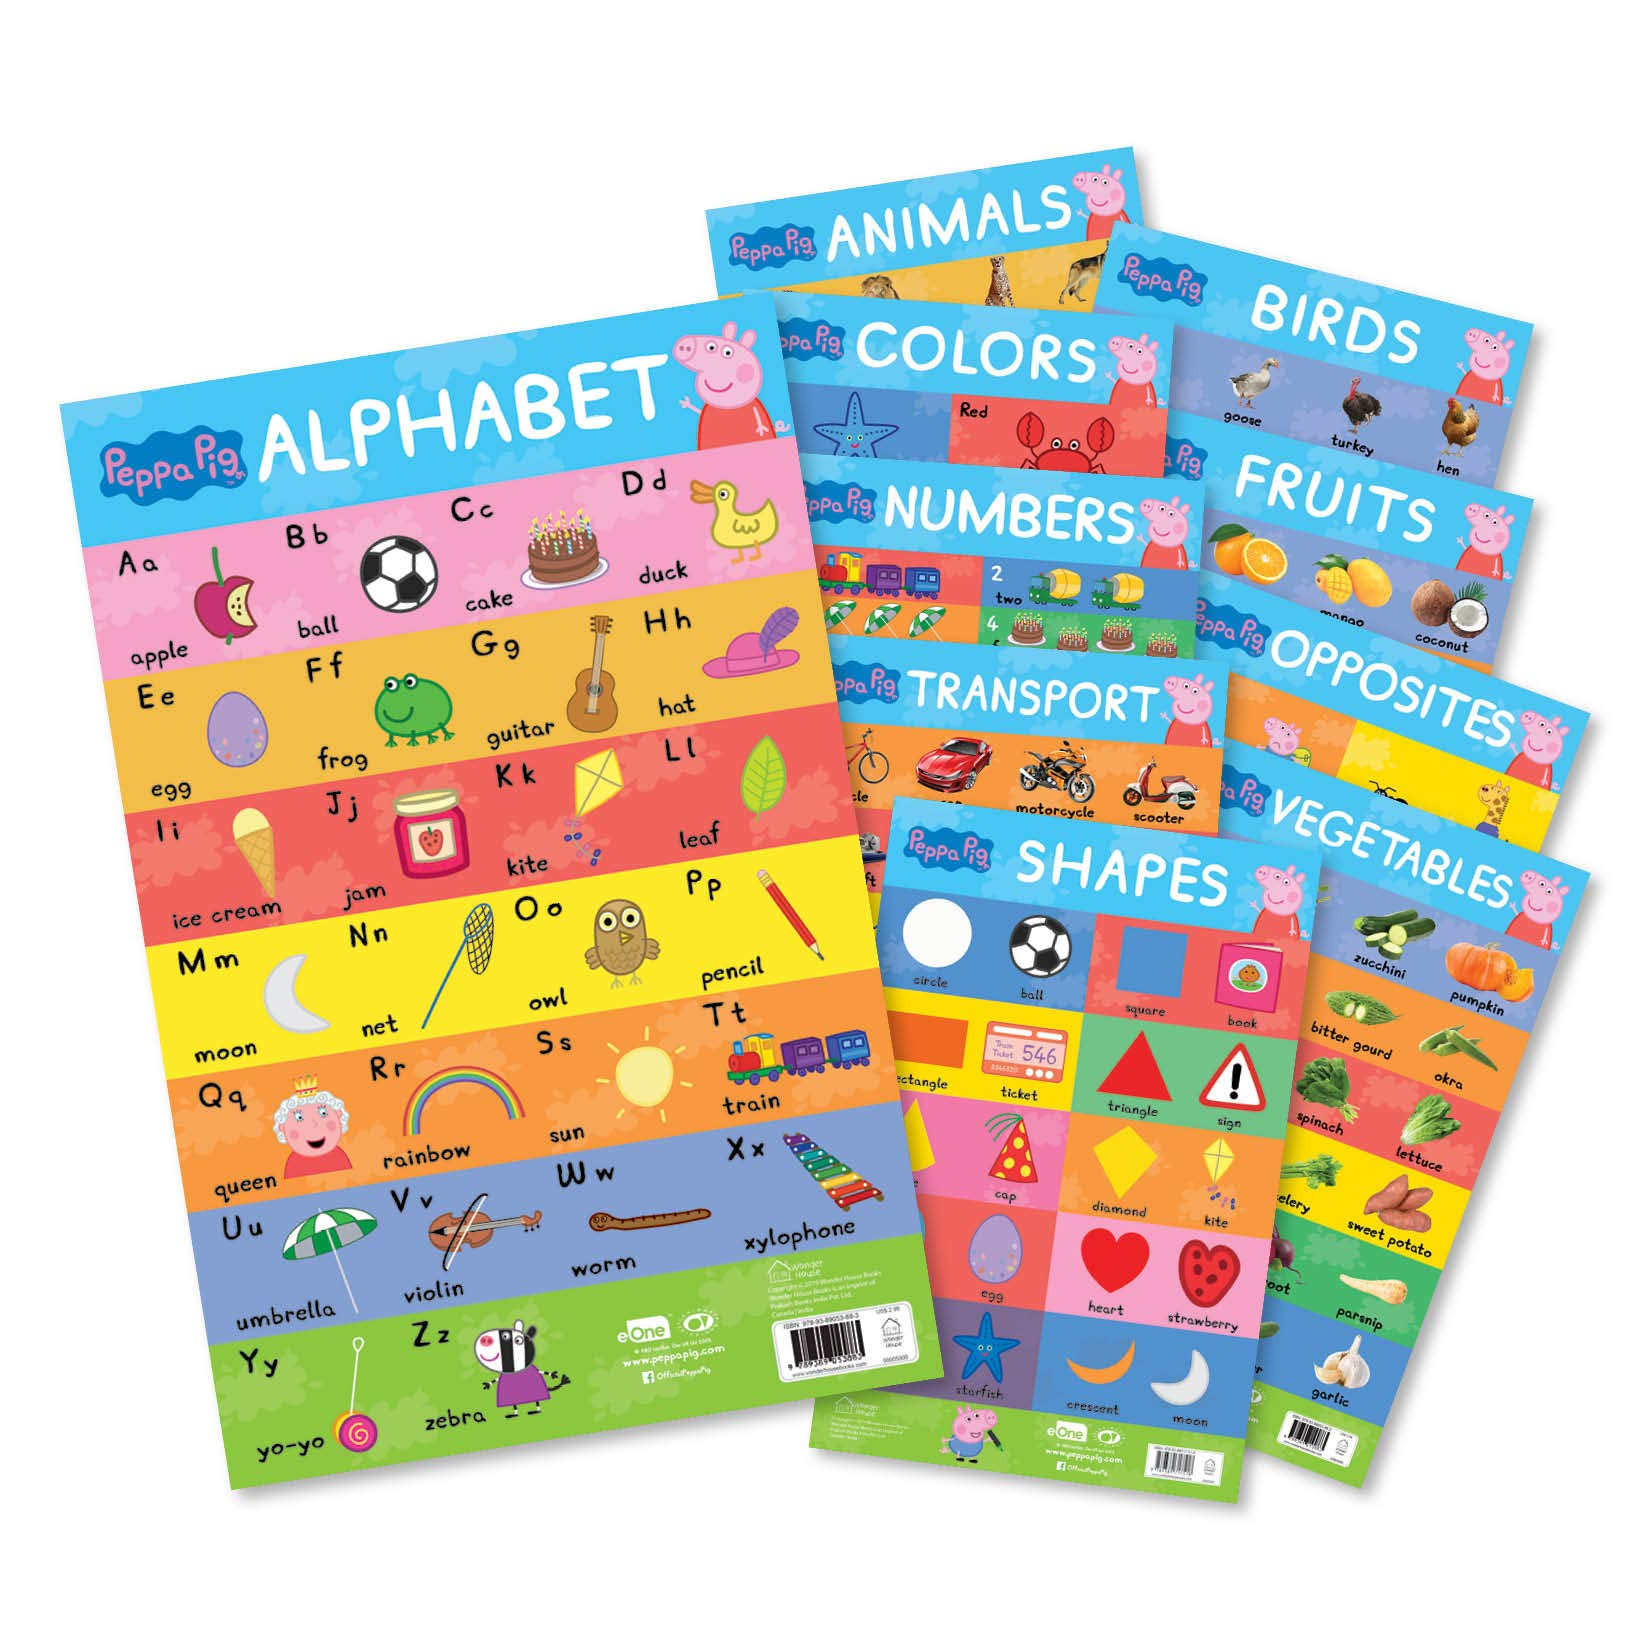 Peppa Pig – My First Early Learning Charts : Learning With Peppa (10 Charts – Alphabet, Animals, Birds, Colors, Fruits, Numbers, Opposites, Shapes, Transport, Vegetables)